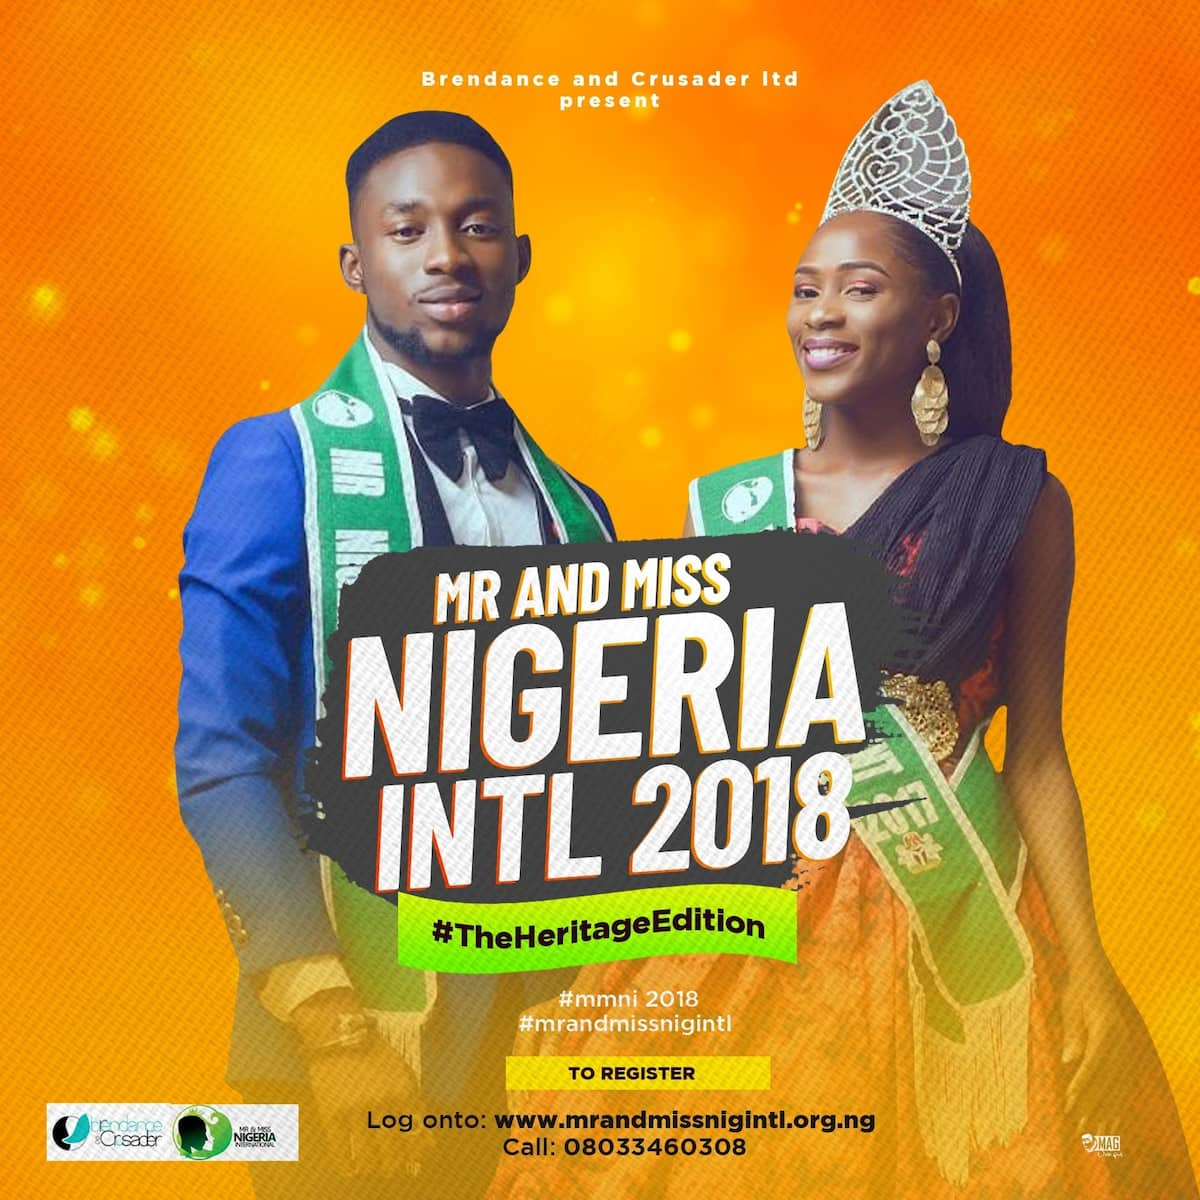 All is set for the 7th Mr and Miss Nigeria International 2018 - The heritage edition